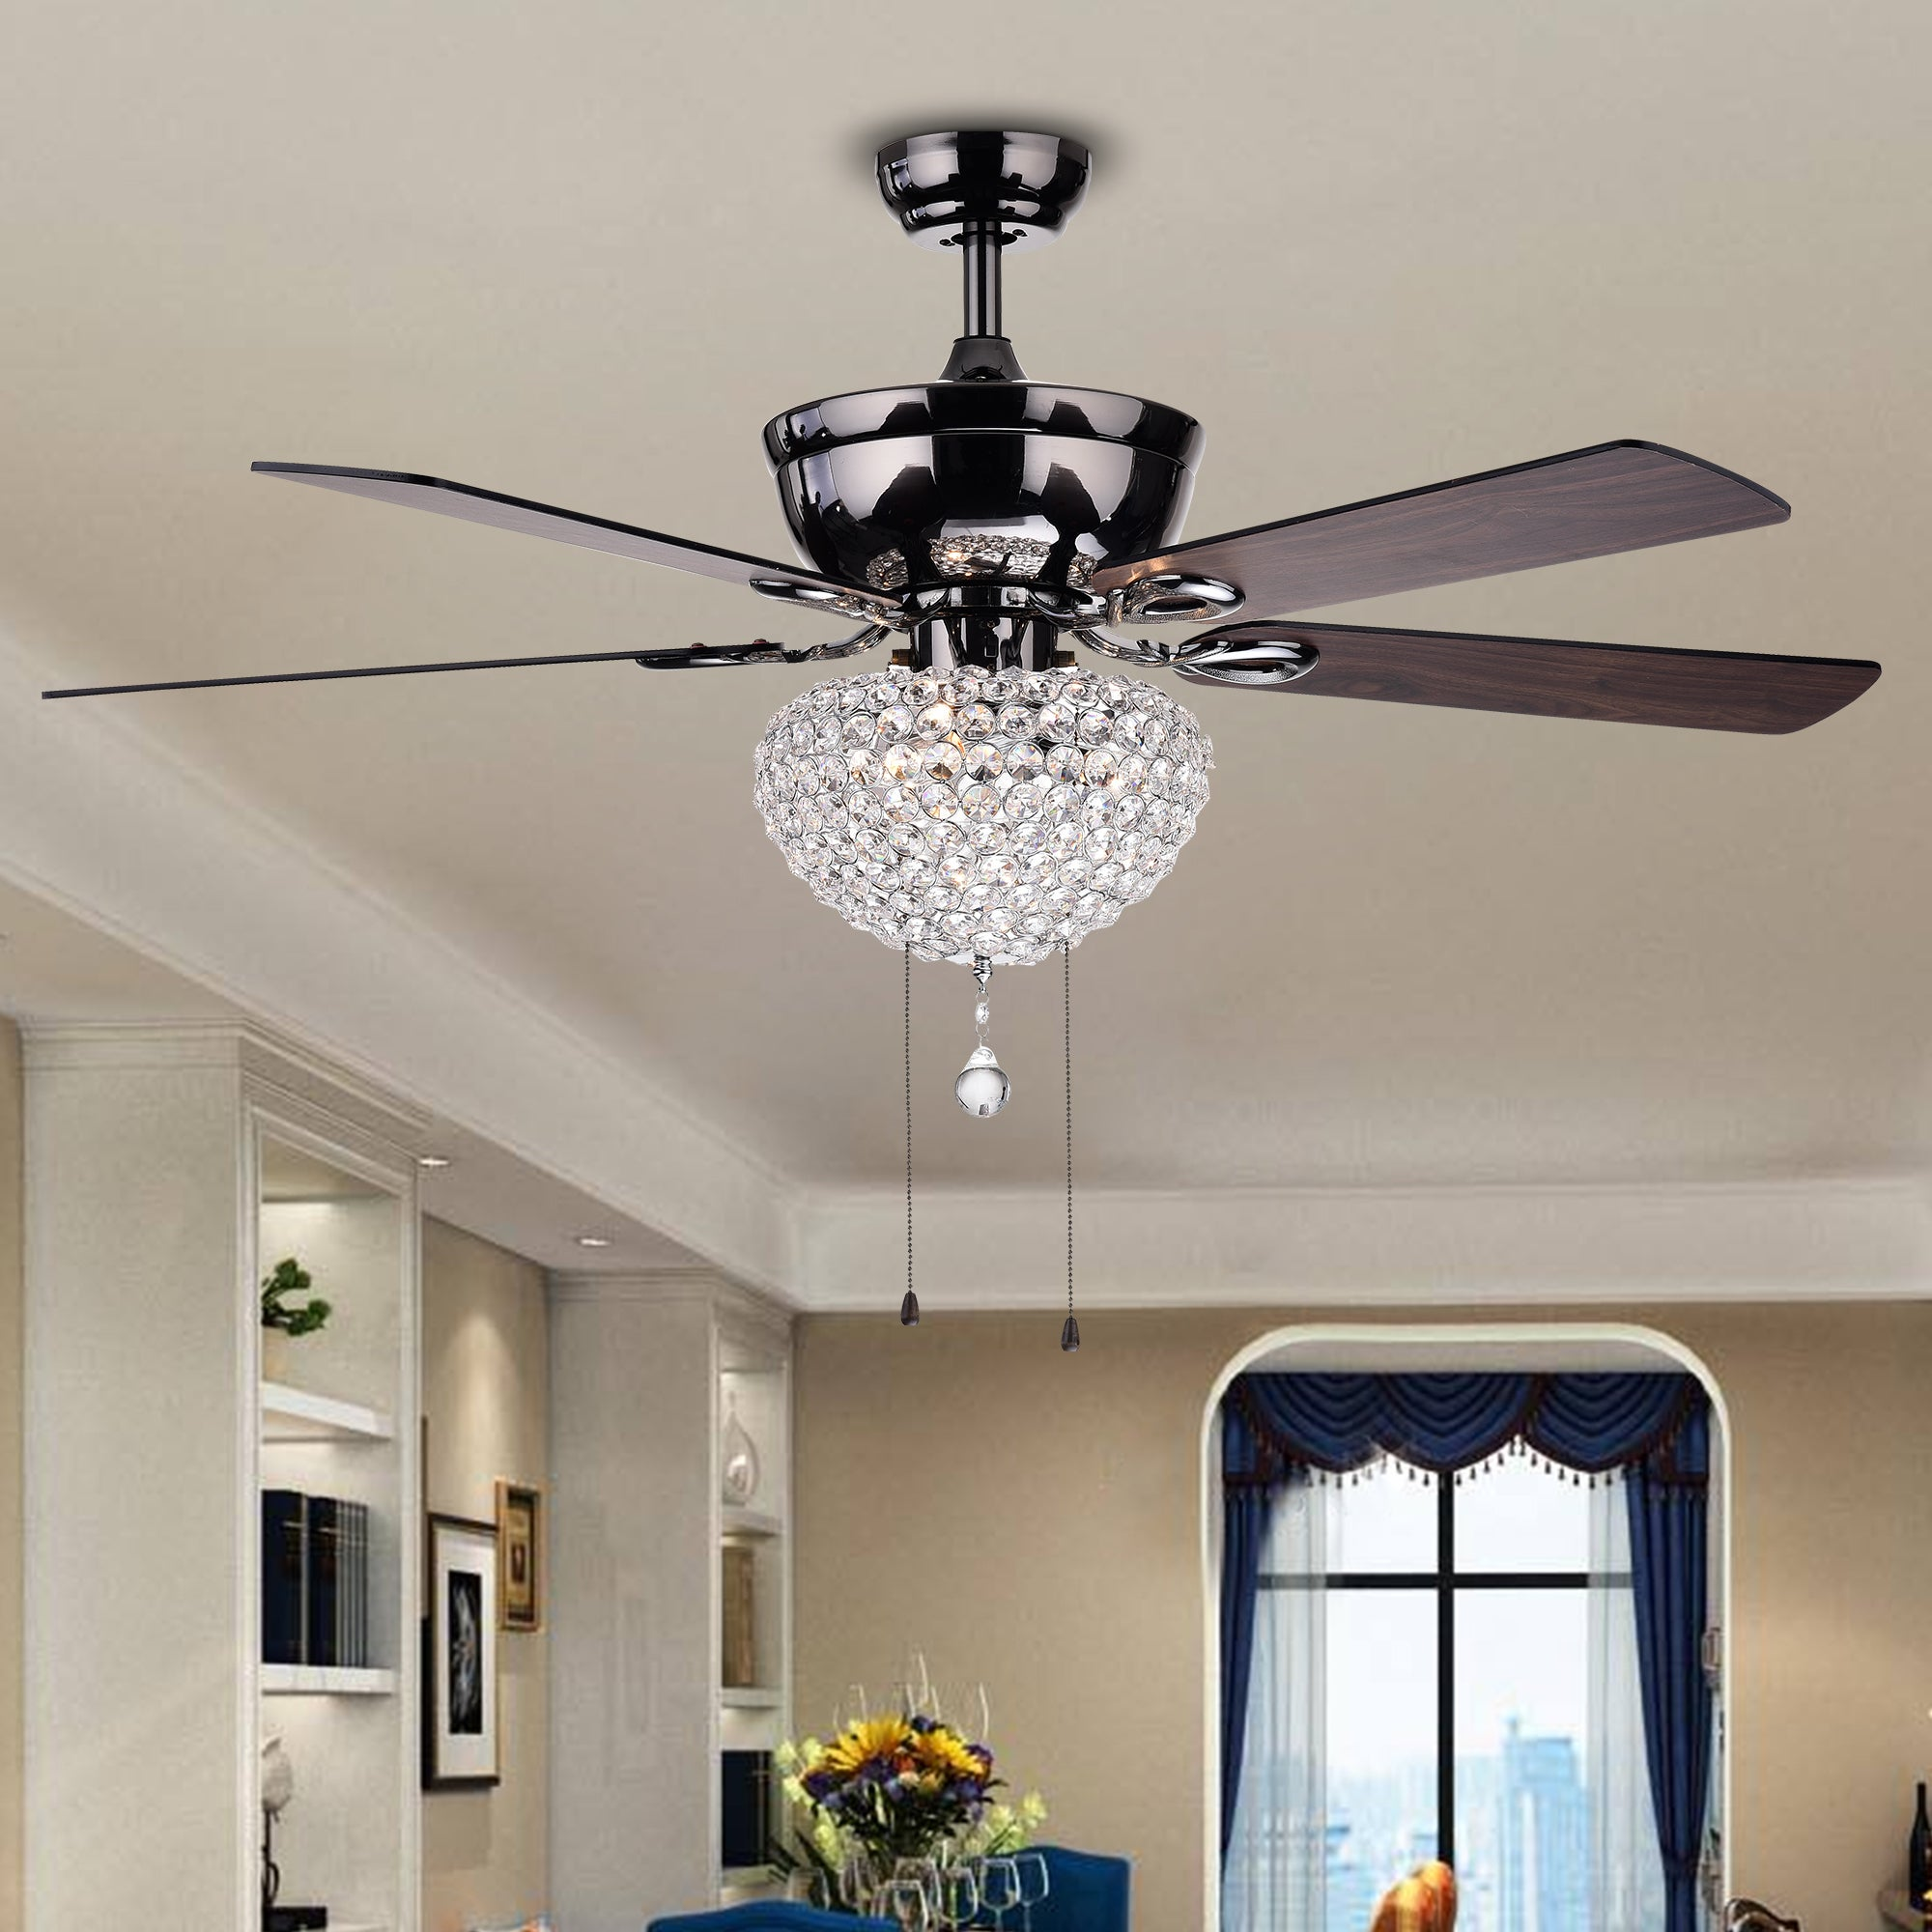 Shop taliko 3 light crystal basket 5 blade wood with black metal shop taliko 3 light crystal basket 5 blade wood with black metal housing 52 inch ceiling fan optional remote on sale free shipping today aloadofball Images